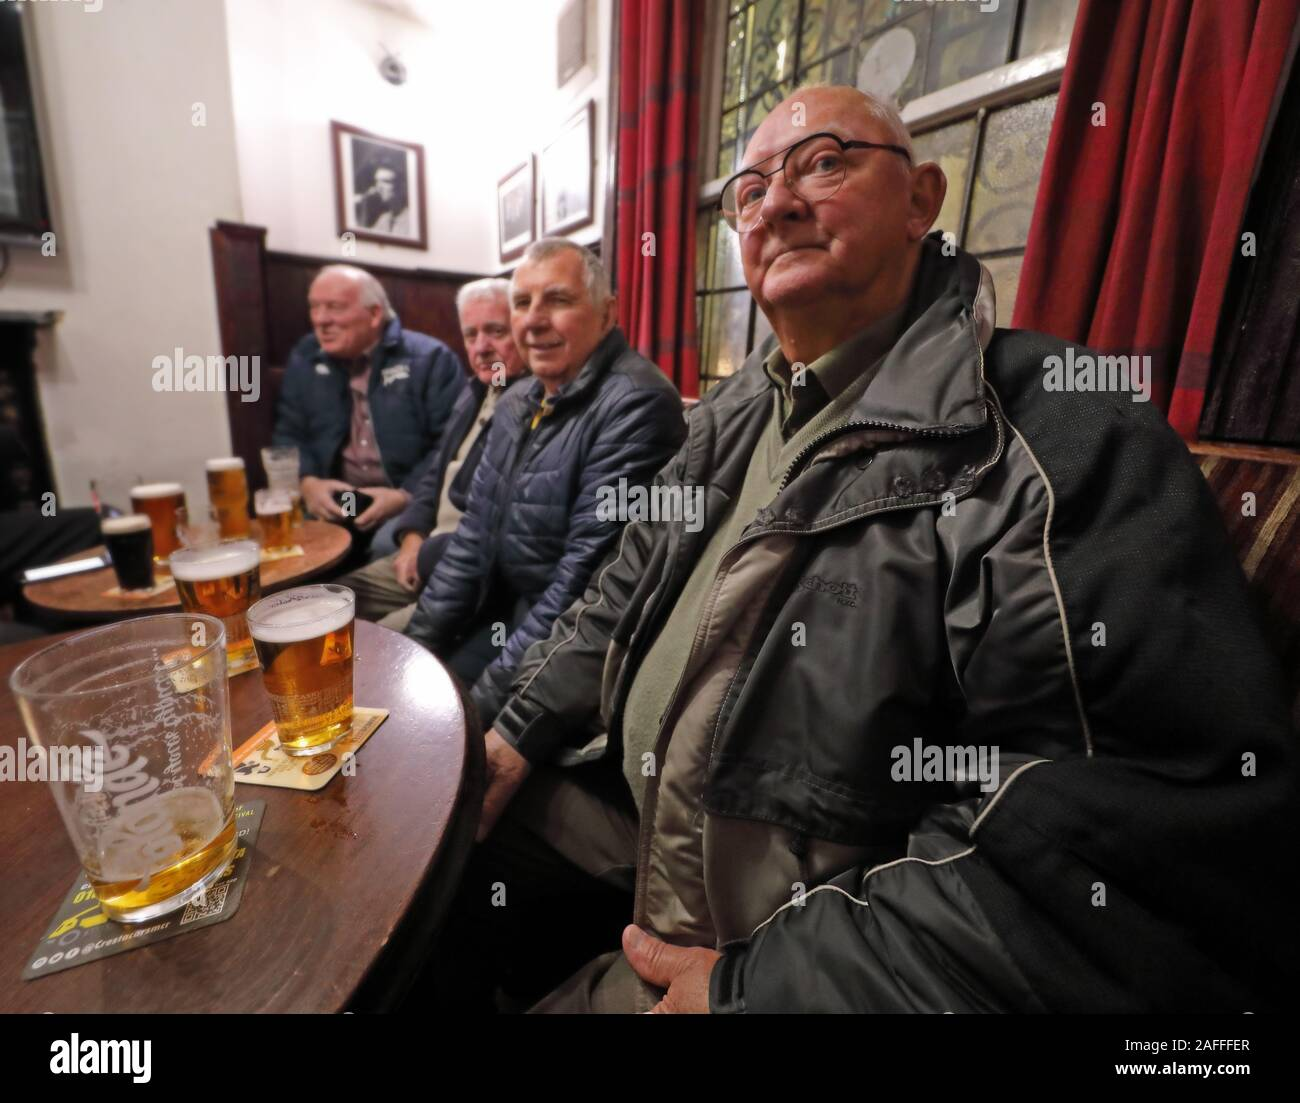 @HotpixUK,HotpixUK,GoTonySmith,@HotpixUk,ale,beer,Tavern,Manchester,customers,men,man,blokes,inside,interior,The Circus,city centre,smallest public house,smallest,1790,Grade II building,Grade II,building,Tetley,Tetleys,historic,oldest pubs in Manchester,oldest pub in Manchester,drinkers,drinker,men in a pub,man in a pub,bitter,lager,pints,on a table,round